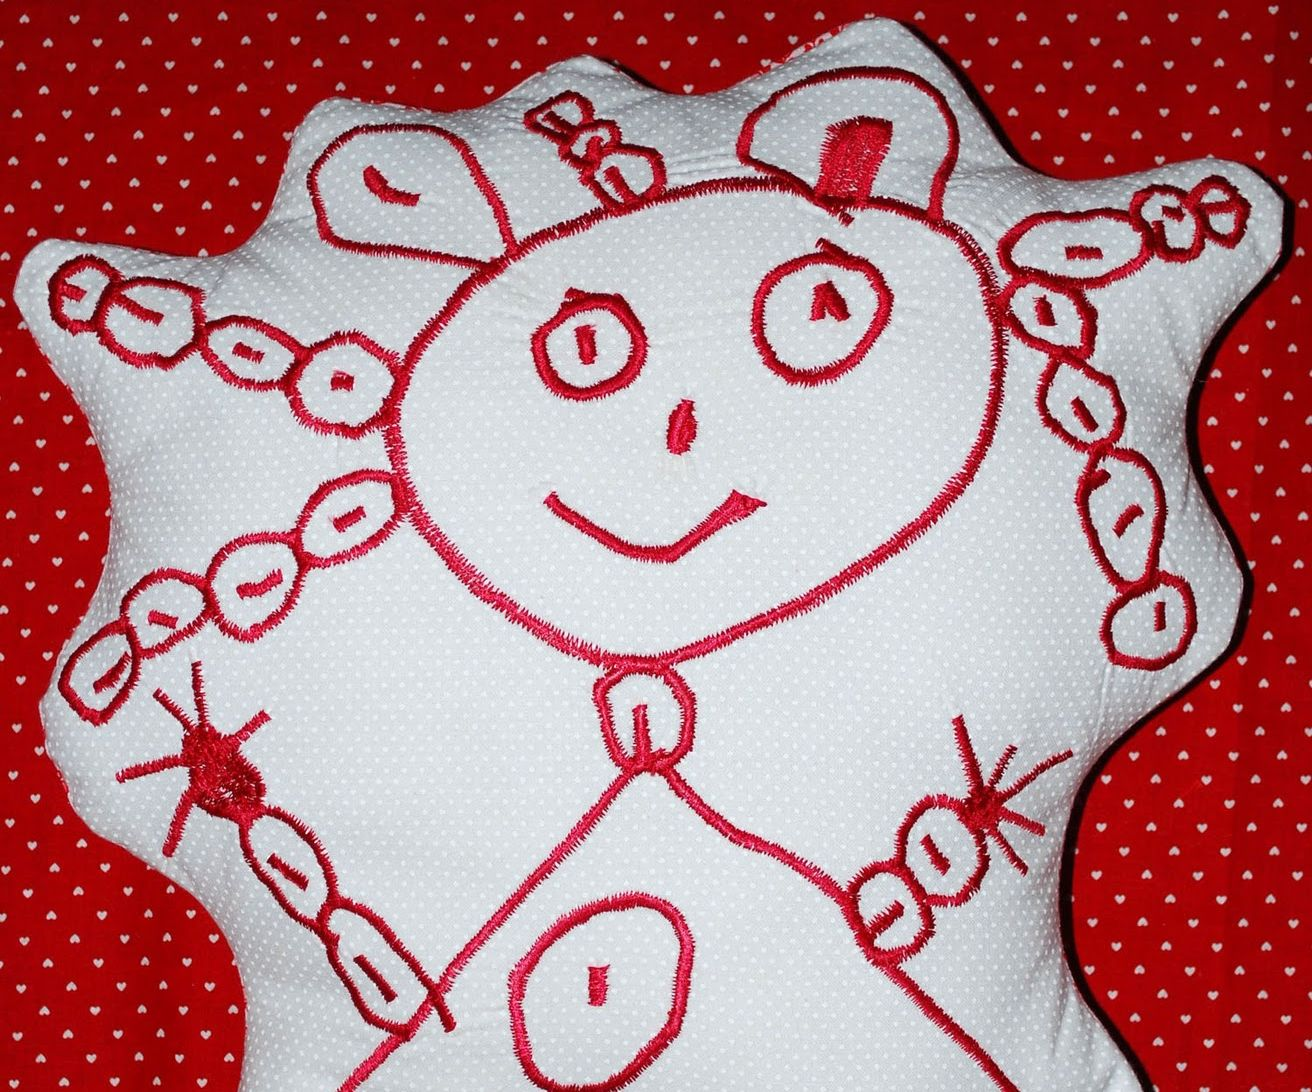 Turn a Child's Drawing Into an Embroidered Plushie